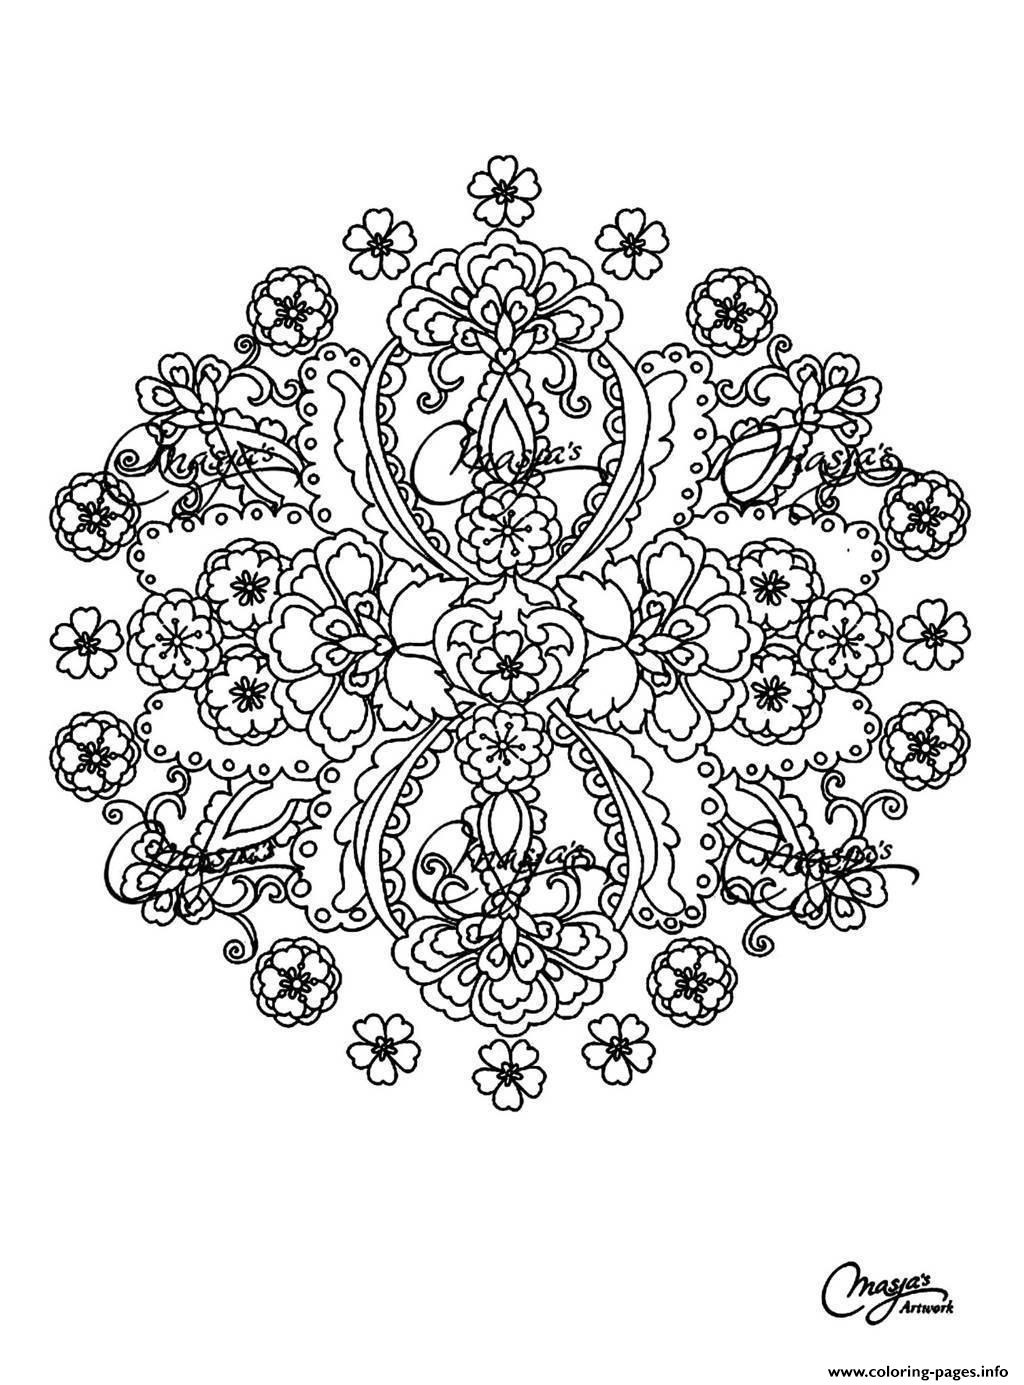 Free Mandala Difficult Adult To Print 15 coloring pages